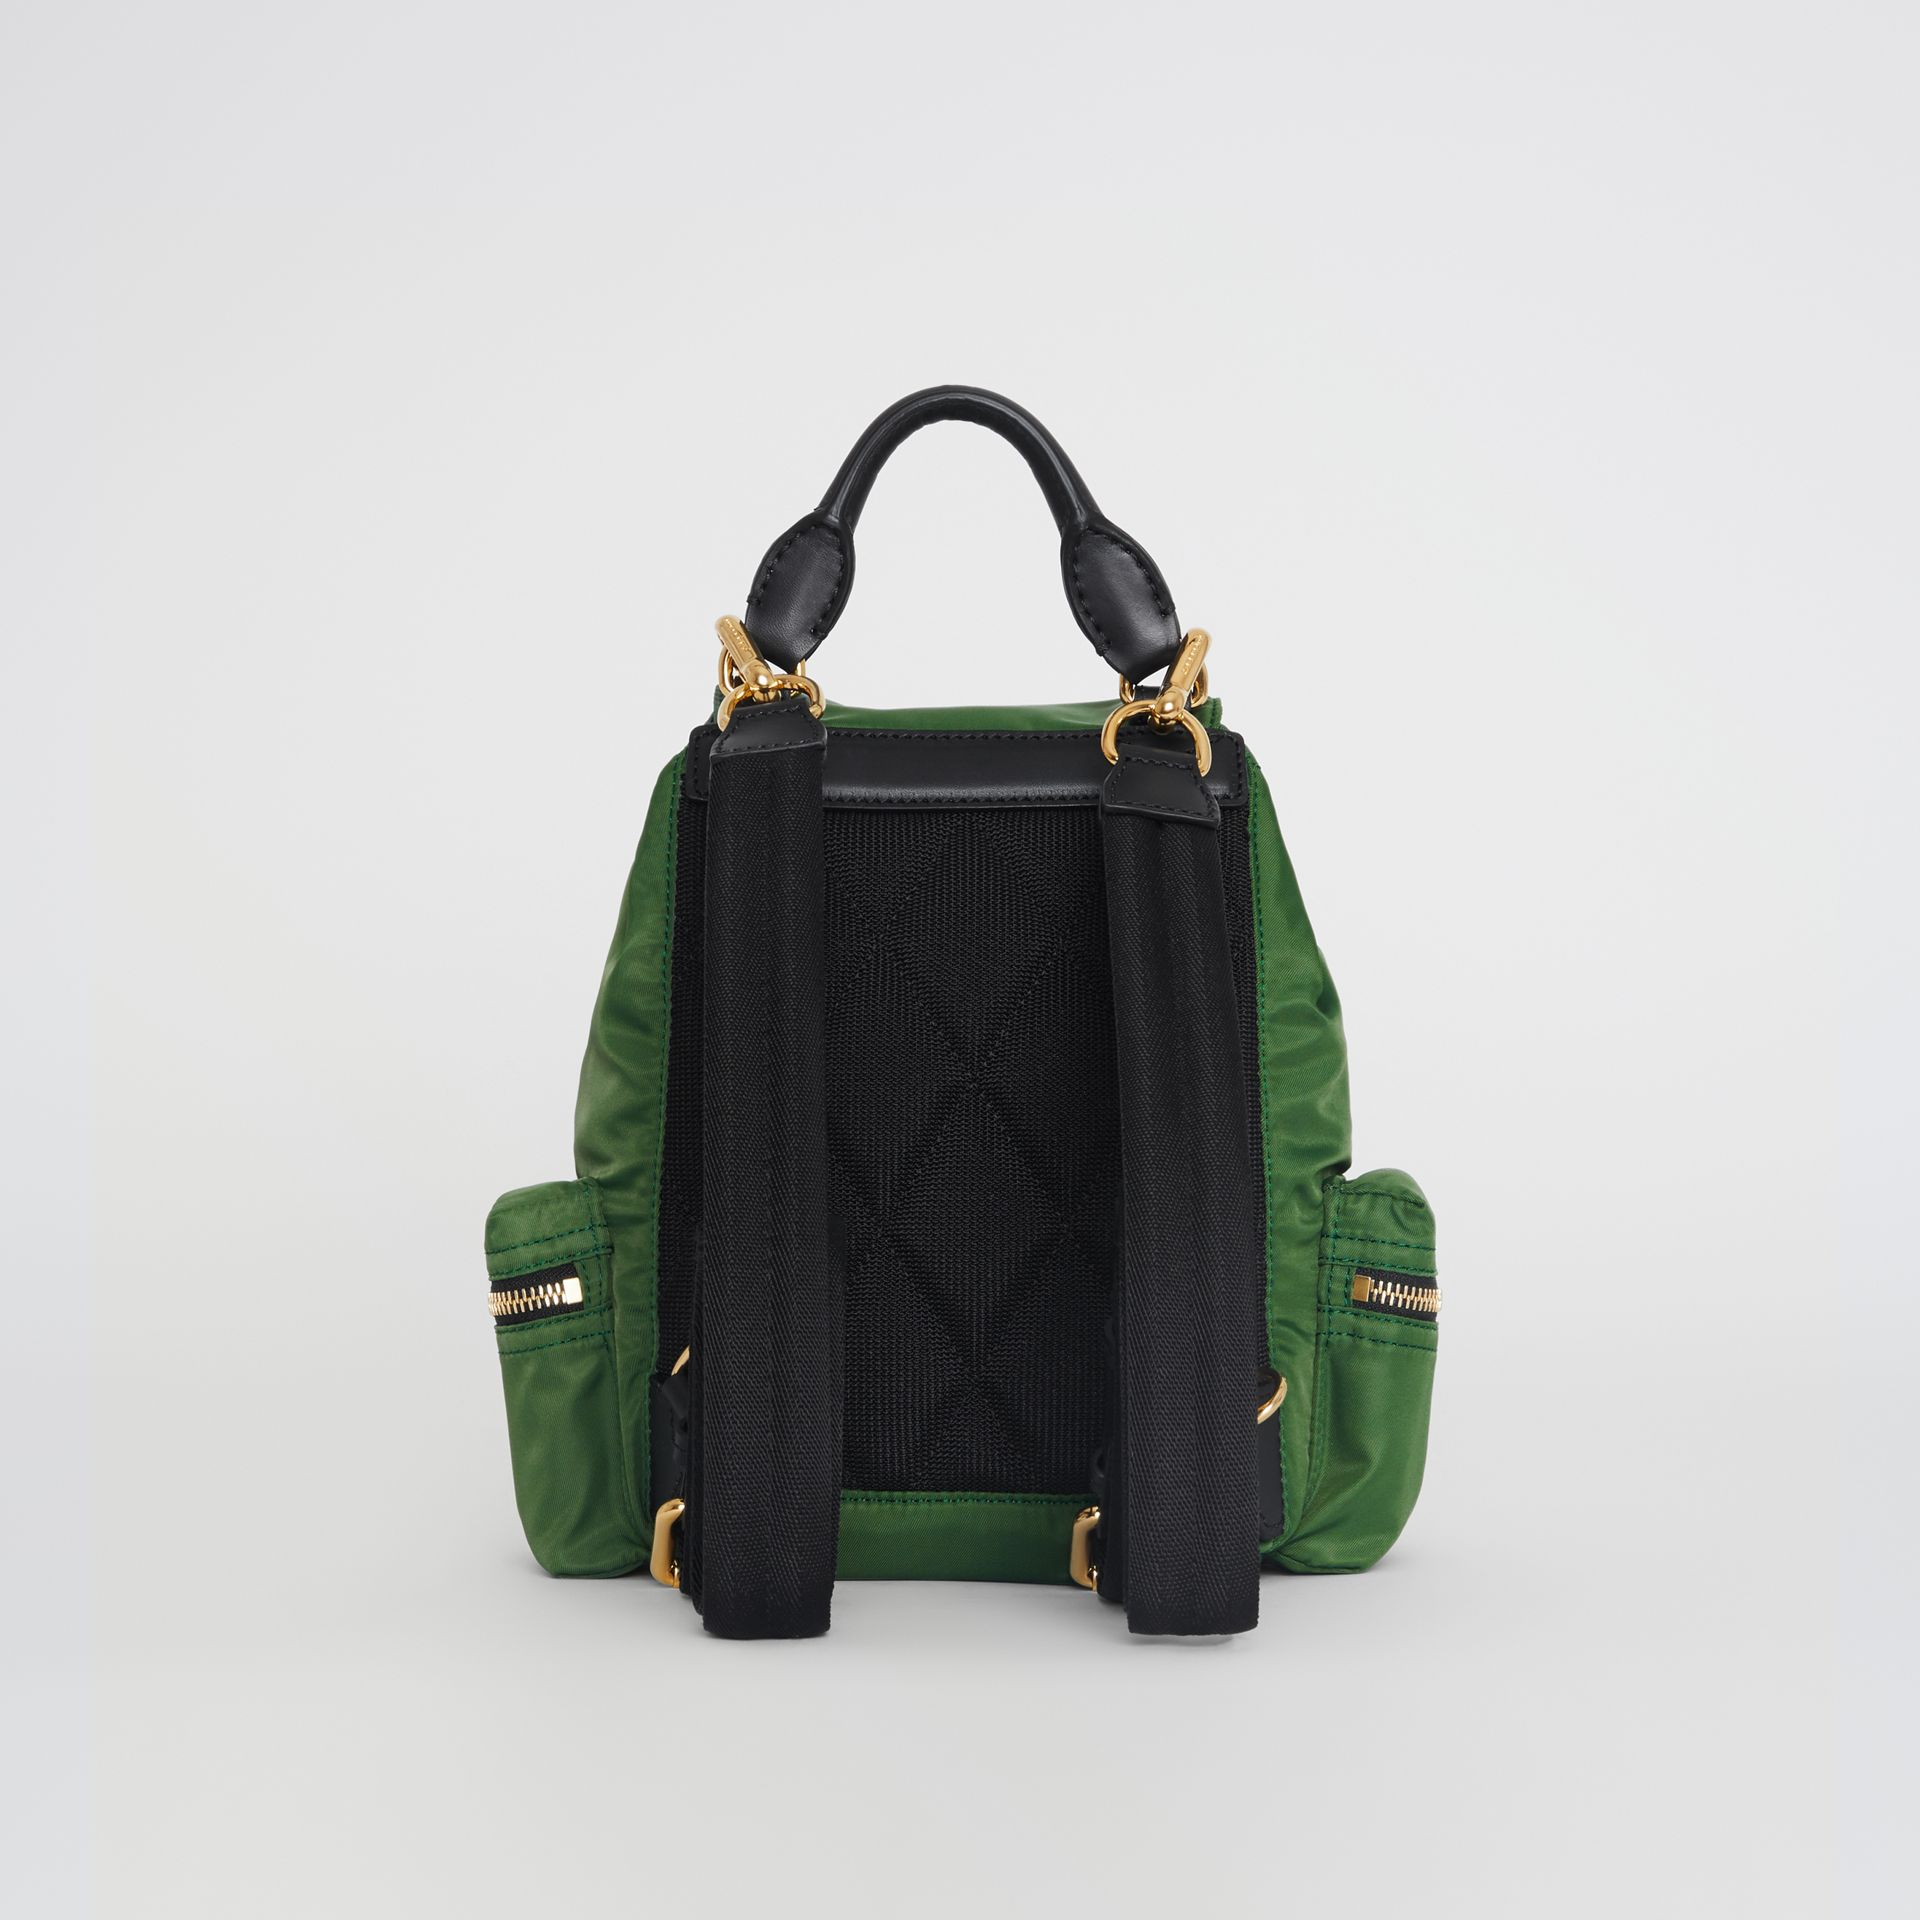 The Small Crossbody Rucksack in Nylon in Racing Green - Women | Burberry Australia - gallery image 8